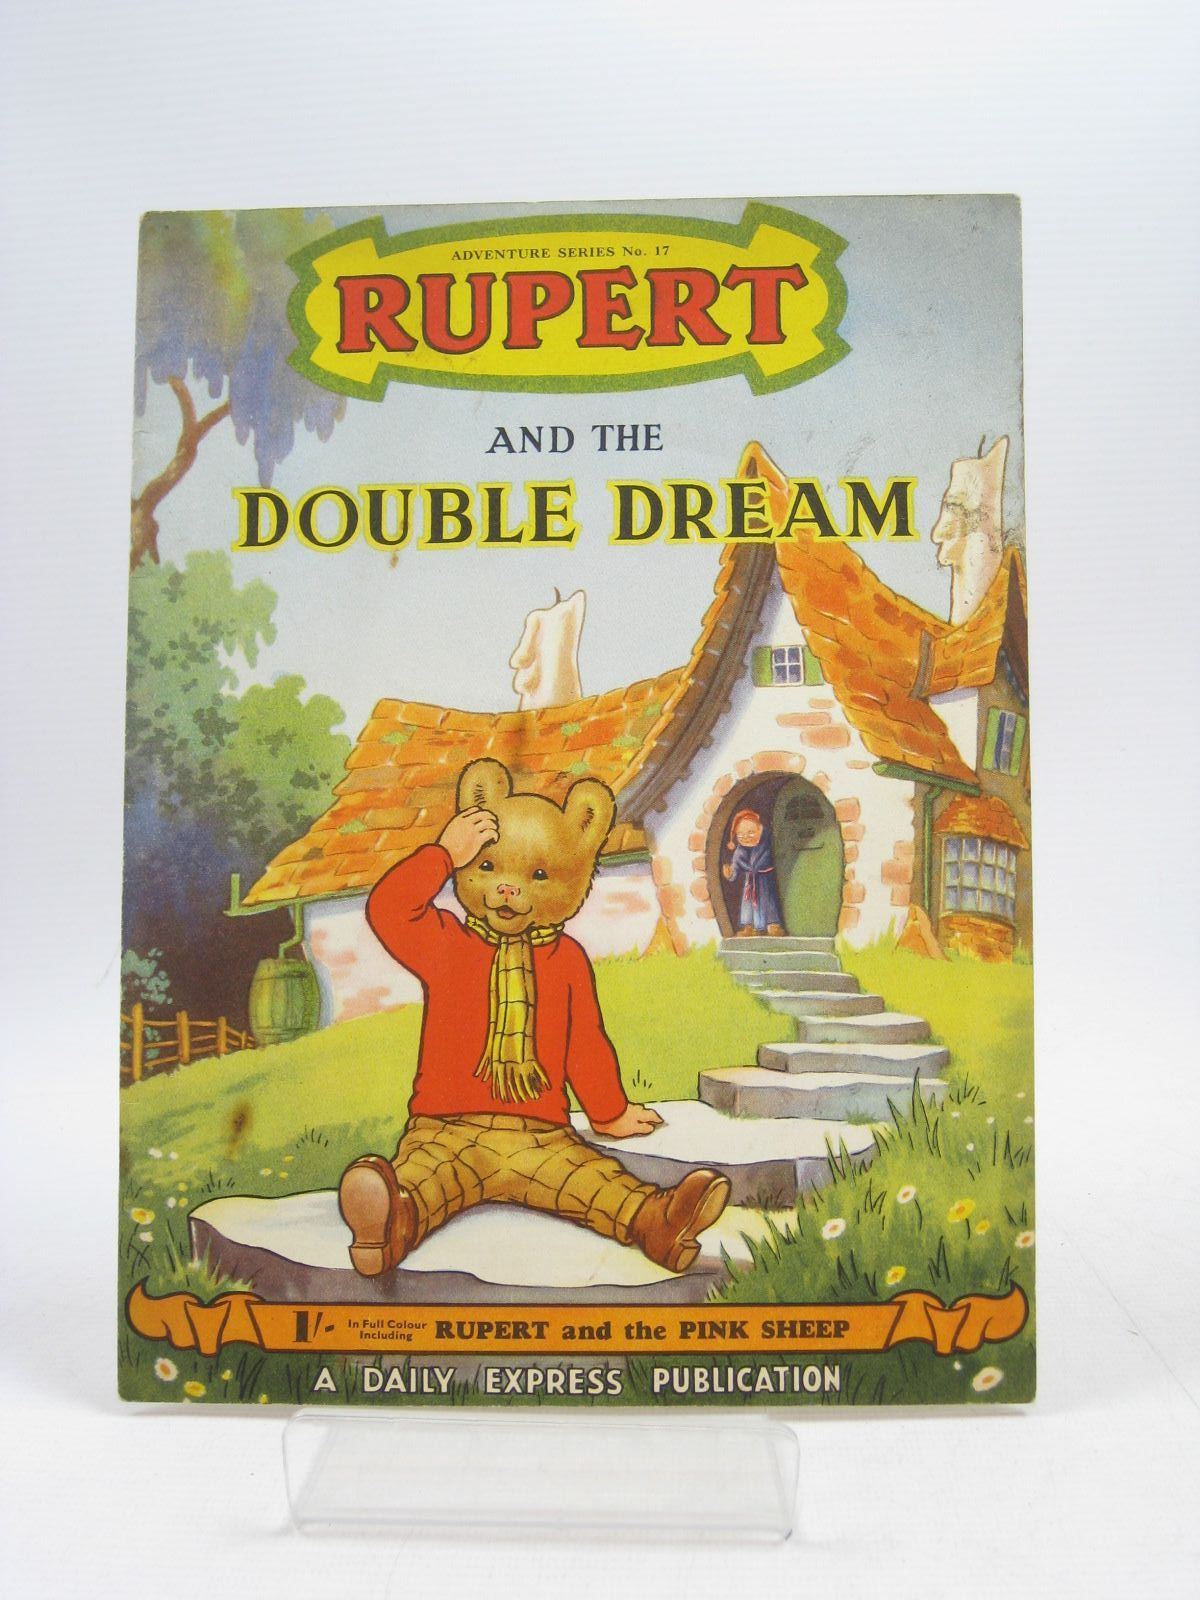 Photo of RUPERT ADVENTURE SERIES No. 17 - RUPERT AND THE DOUBLE DREAM written by Bestall, Alfred published by Daily Express (STOCK CODE: 1403906)  for sale by Stella & Rose's Books